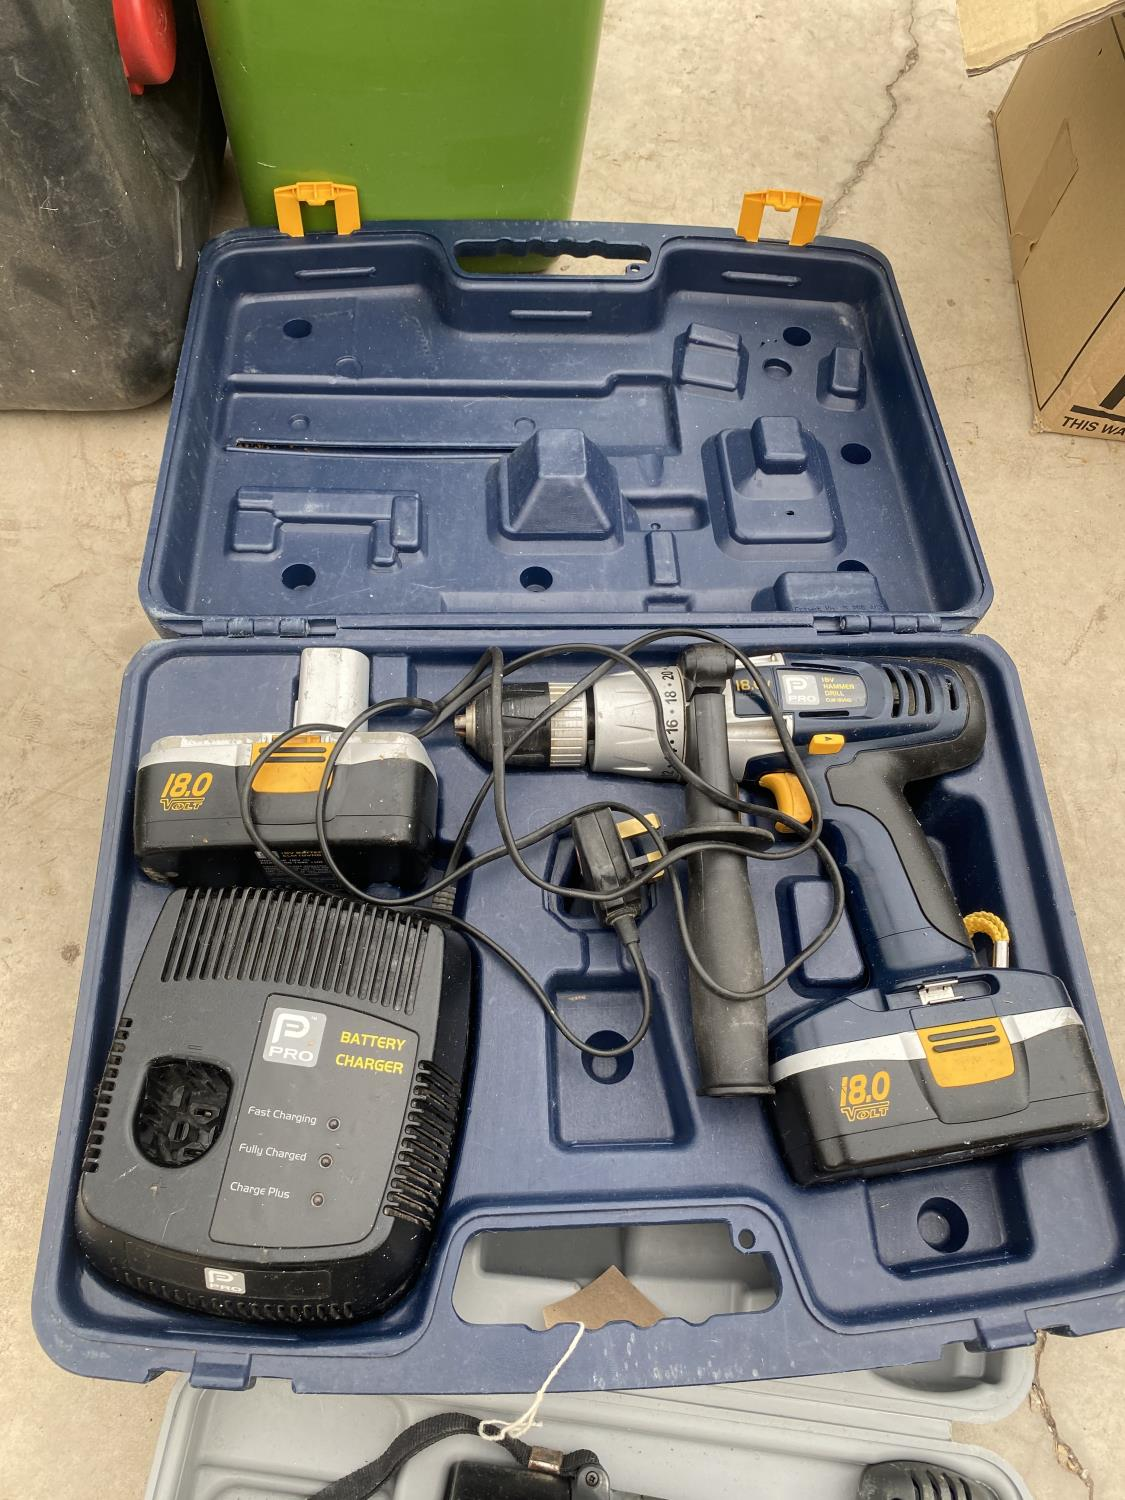 A PRO BATTERY DRILL AND A FURTHER BATTERY DRILL - Image 3 of 3